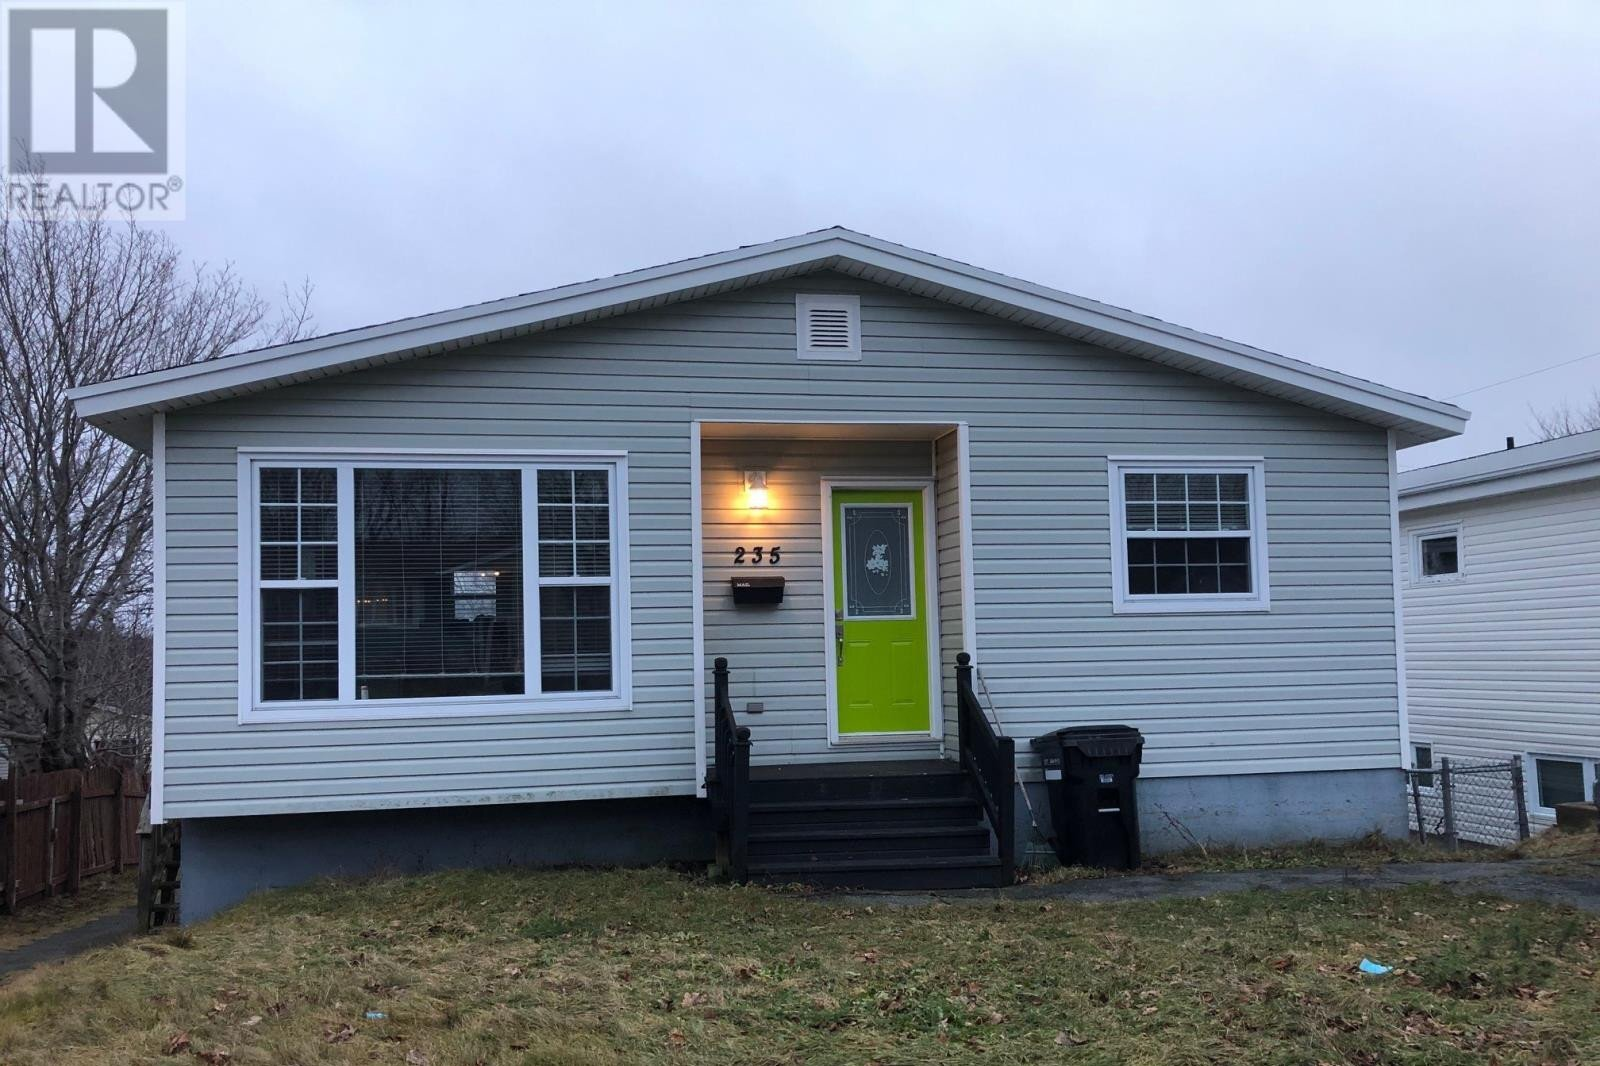 House for sale at 235 Canada Dr St. Johns Newfoundland - MLS: 1224786